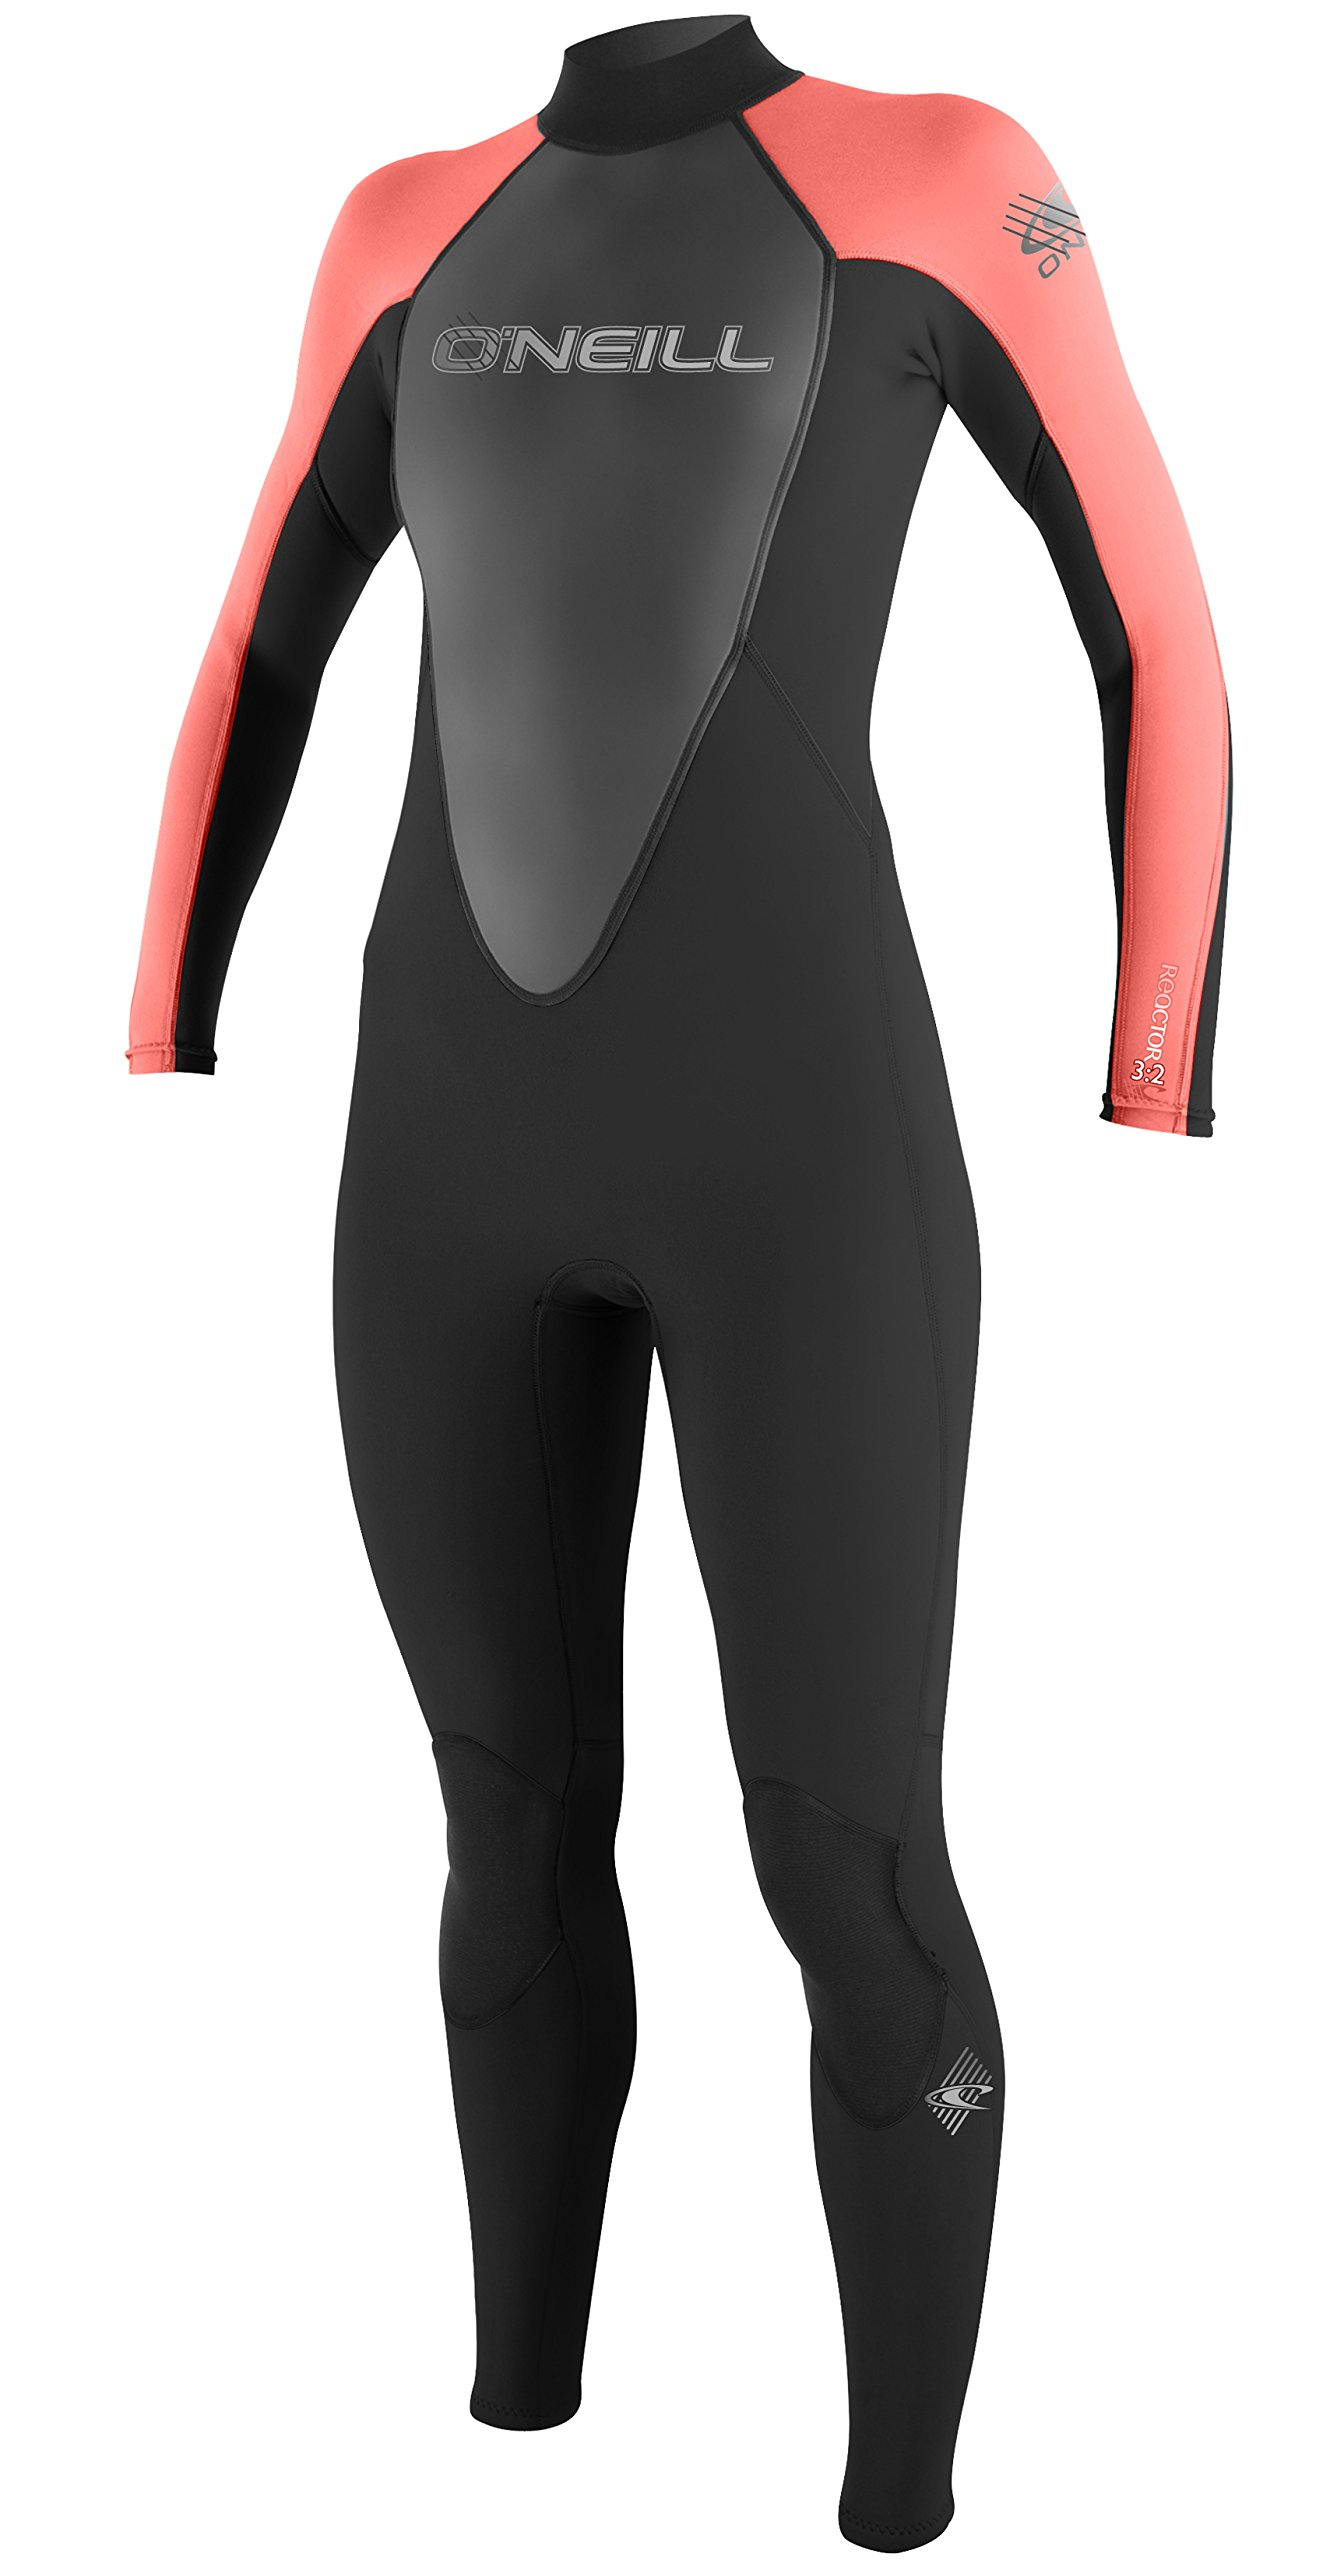 O'Neill Women's 3/2mm Reactor Full Wetsuit, Black Coral, Size 6